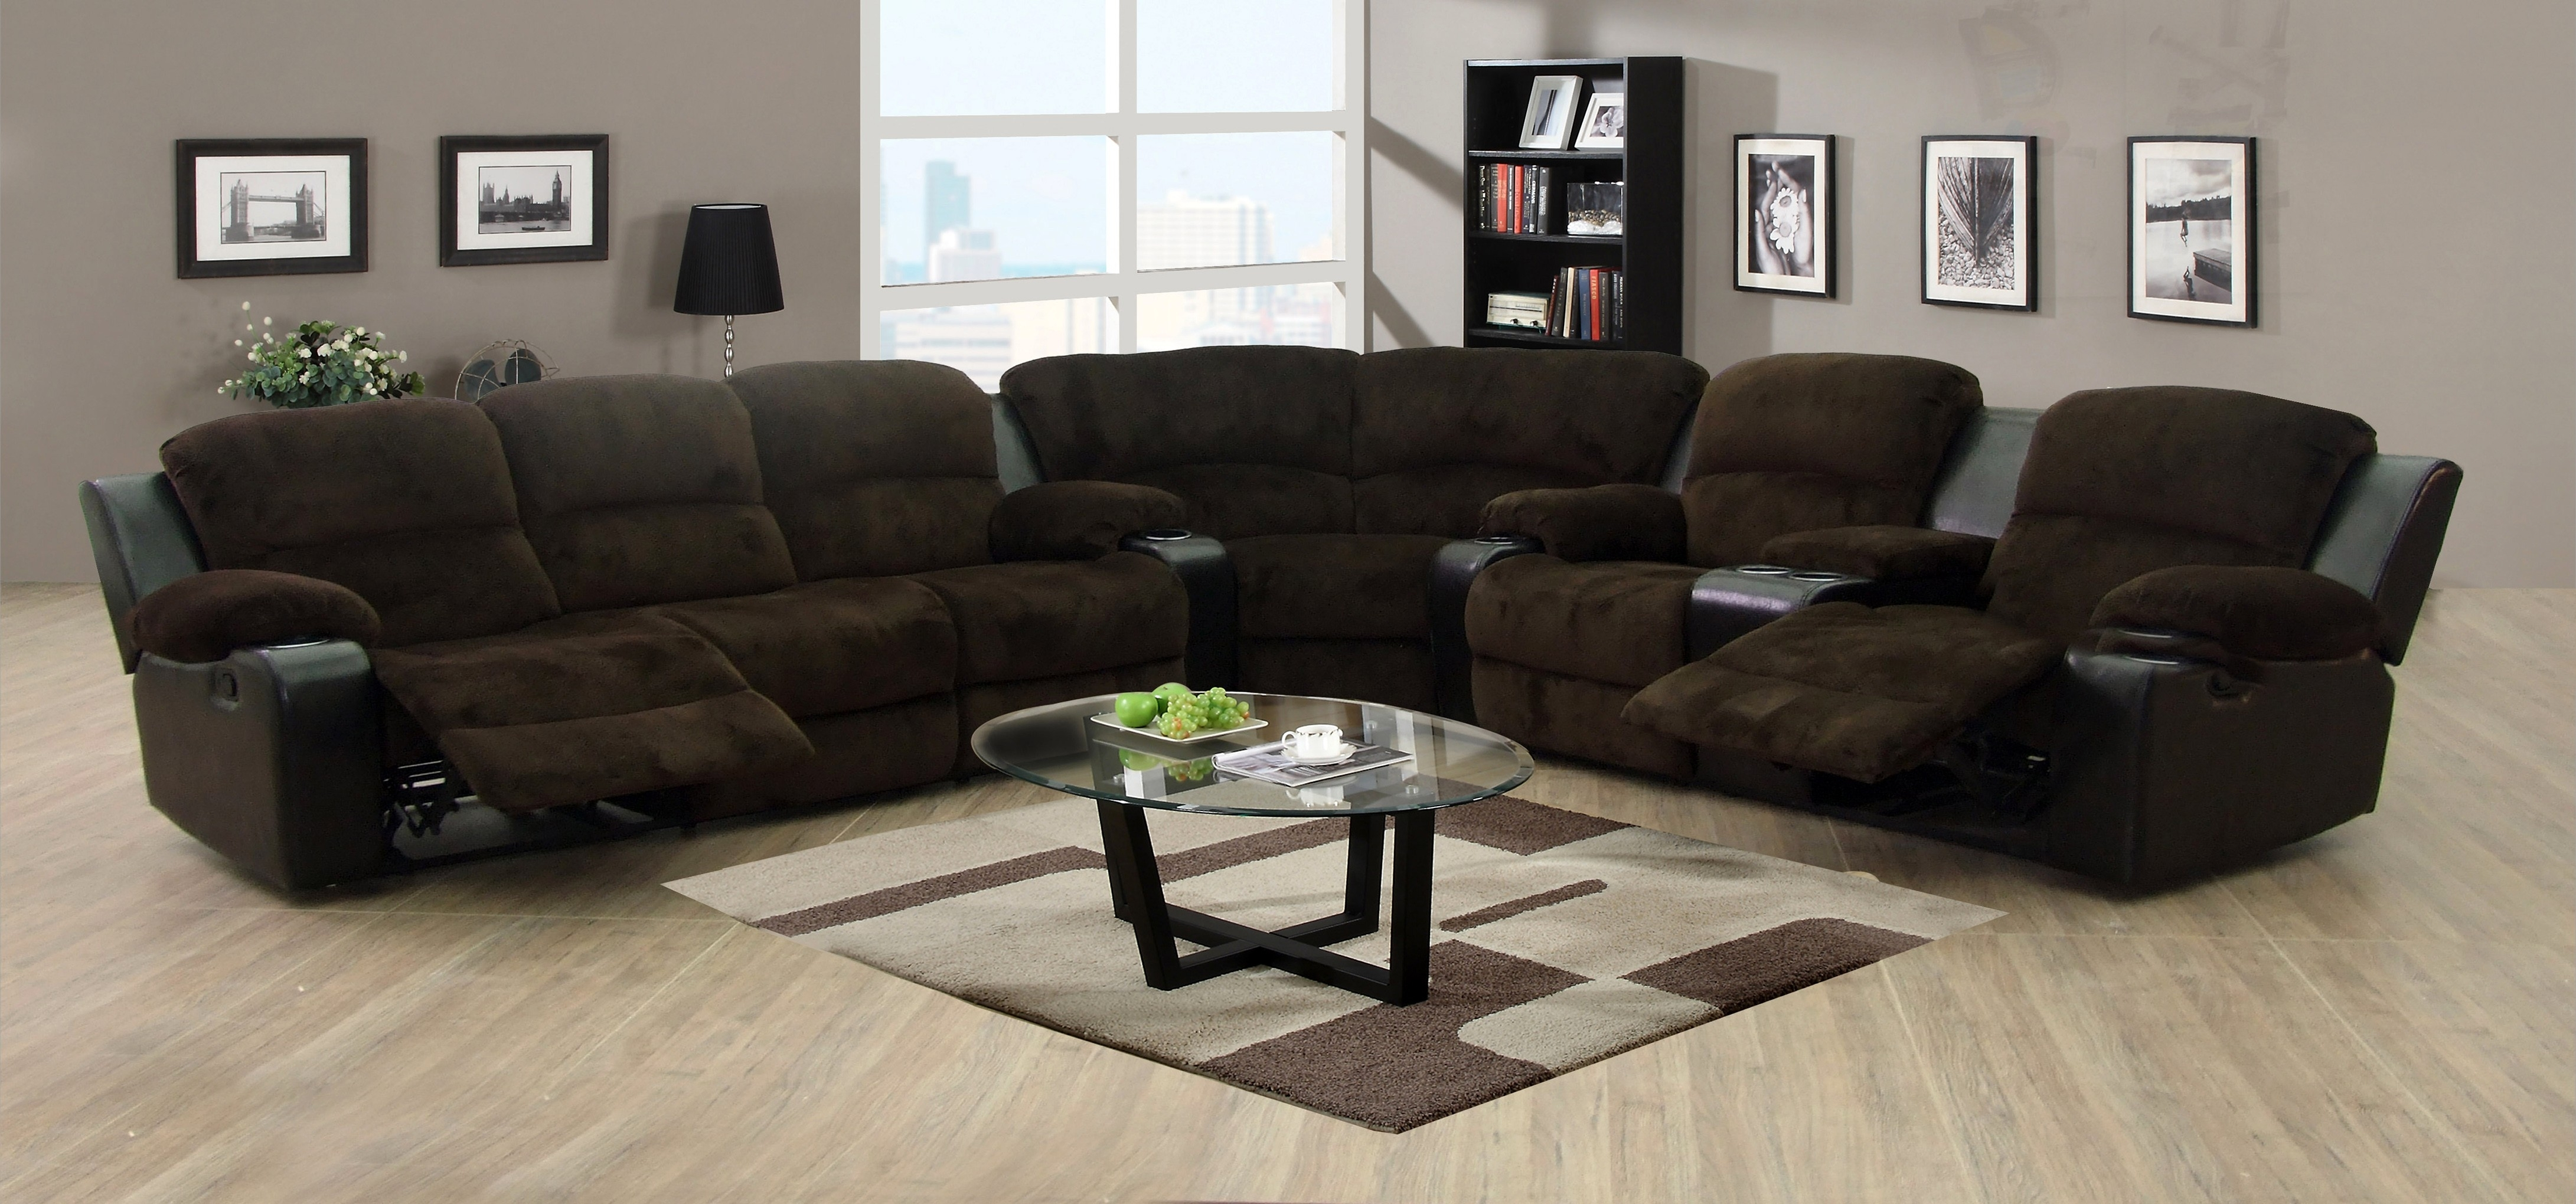 Sectional Sofas With Recliners And Cup Holders | Jannamo in Sectional Sofas With Cup Holders (Image 8 of 10)